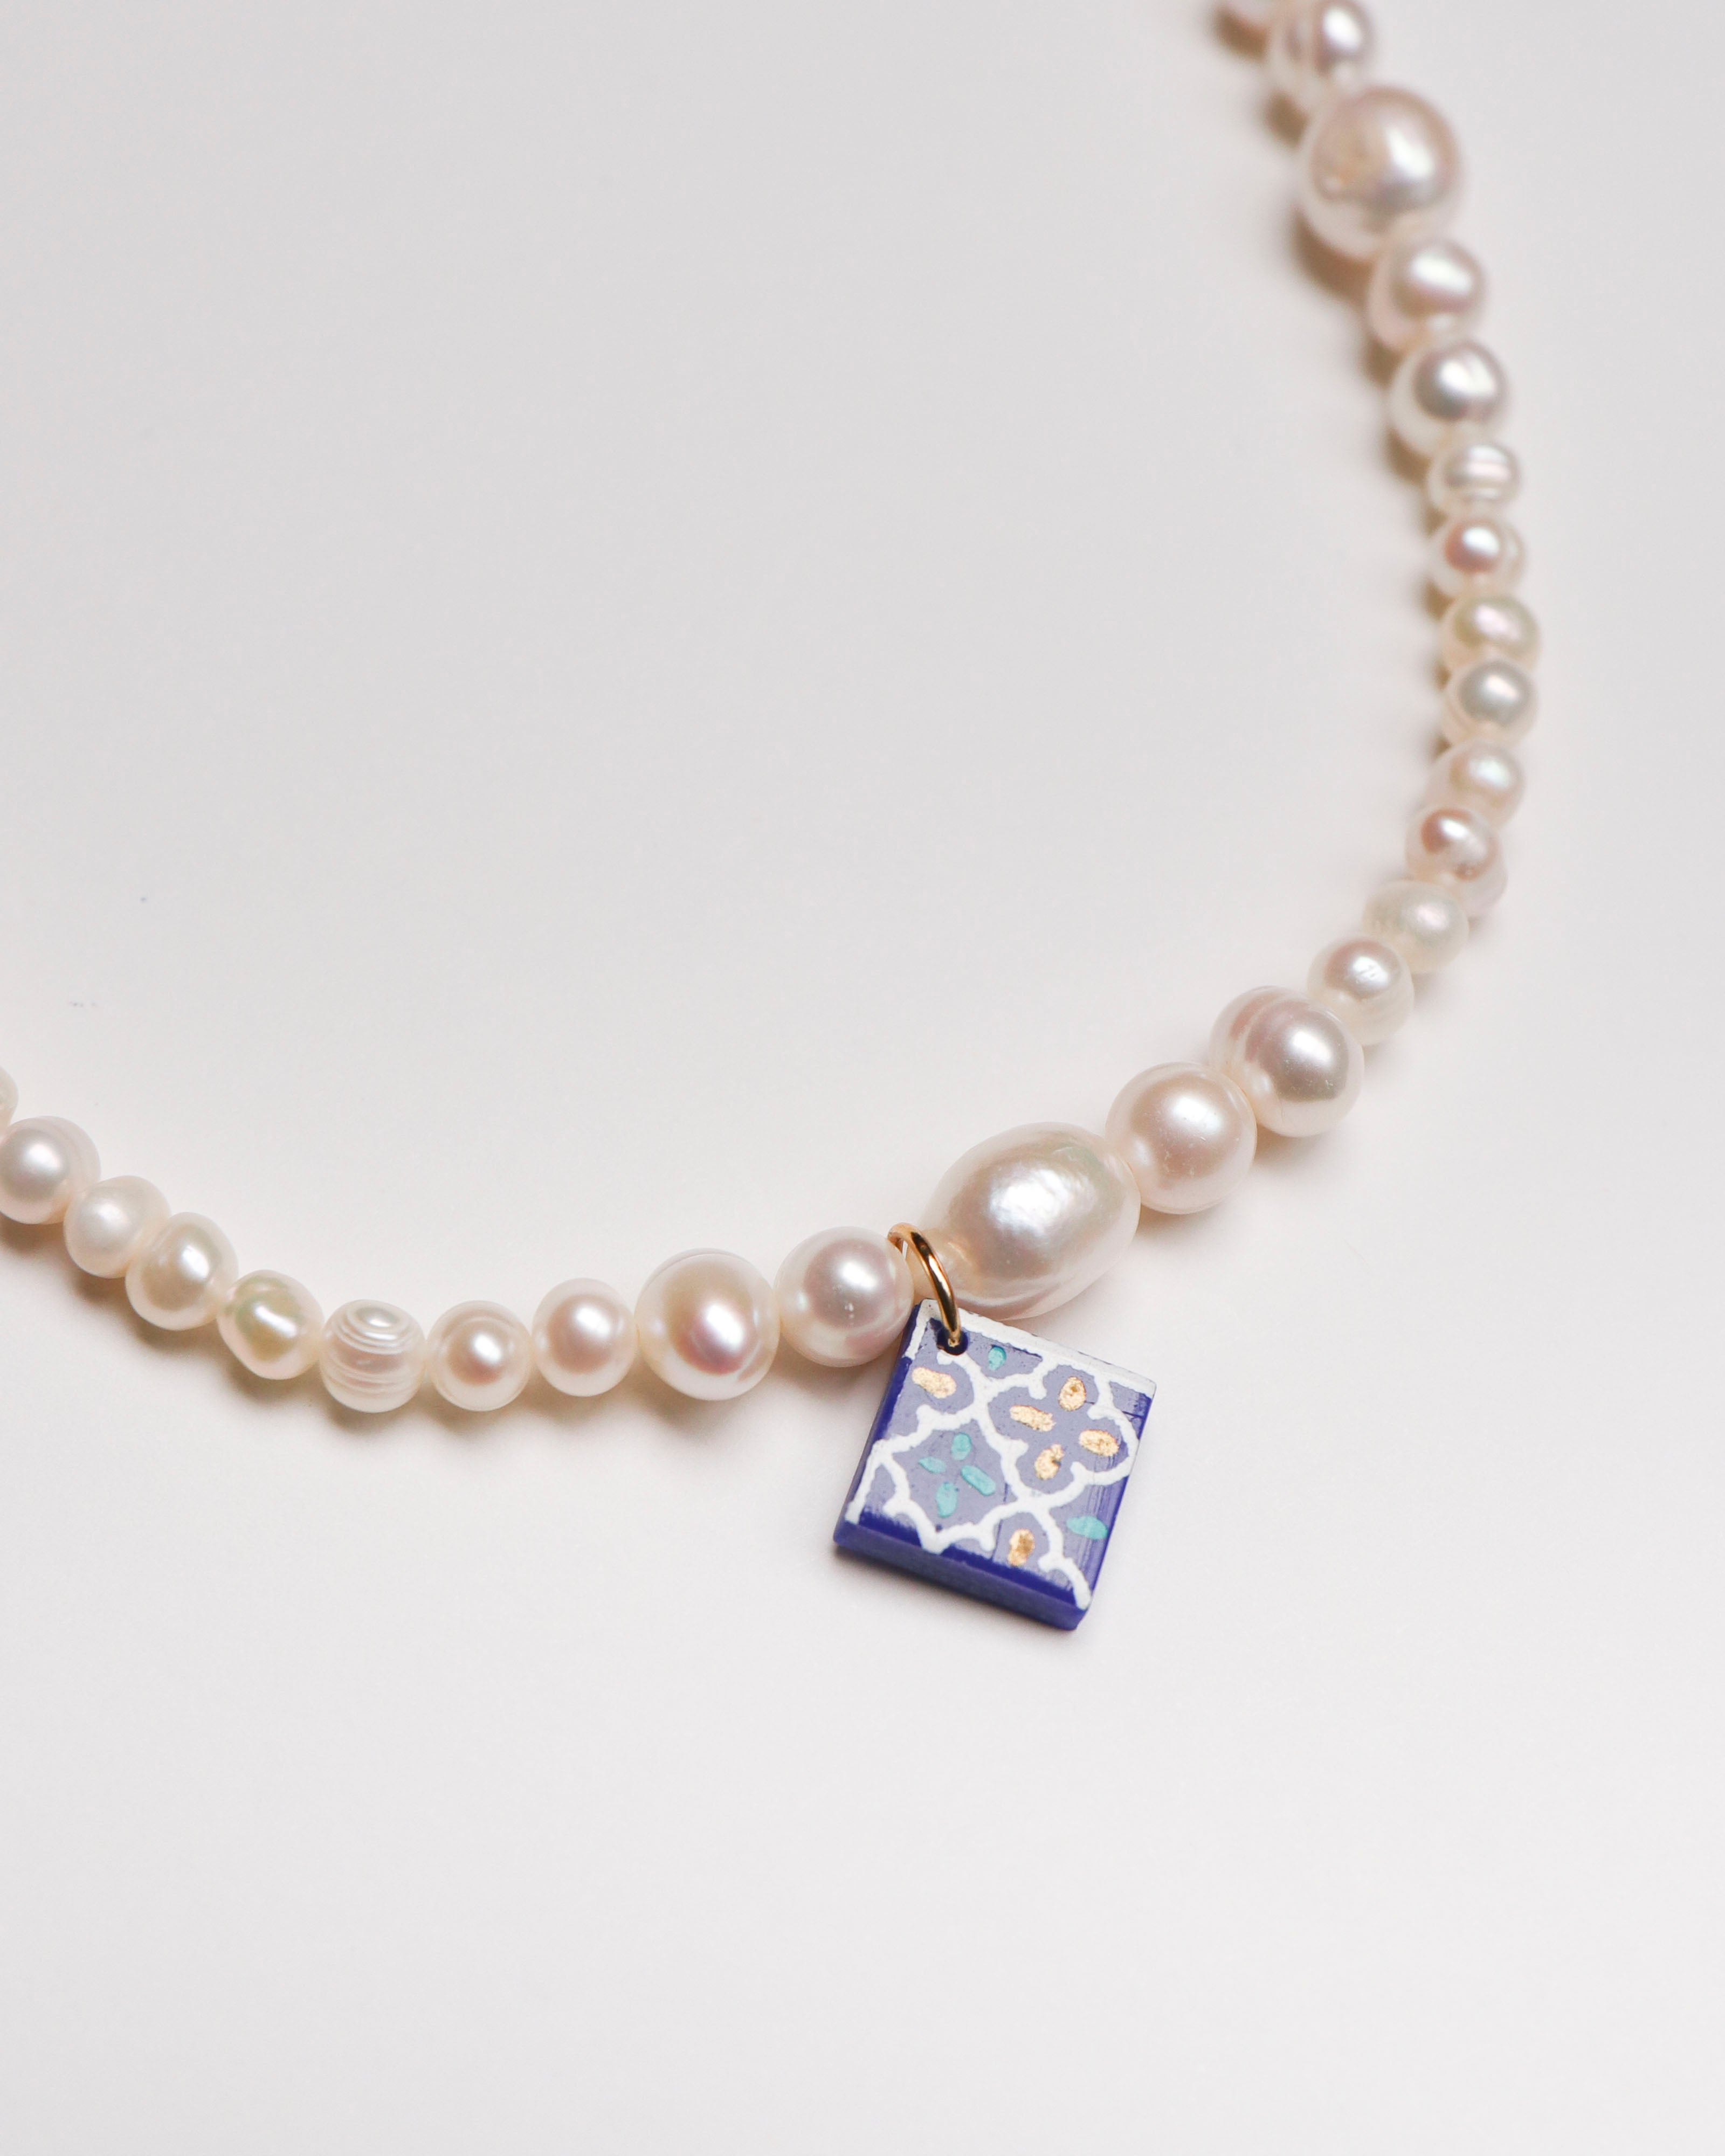 Ebb Necklace with Tile